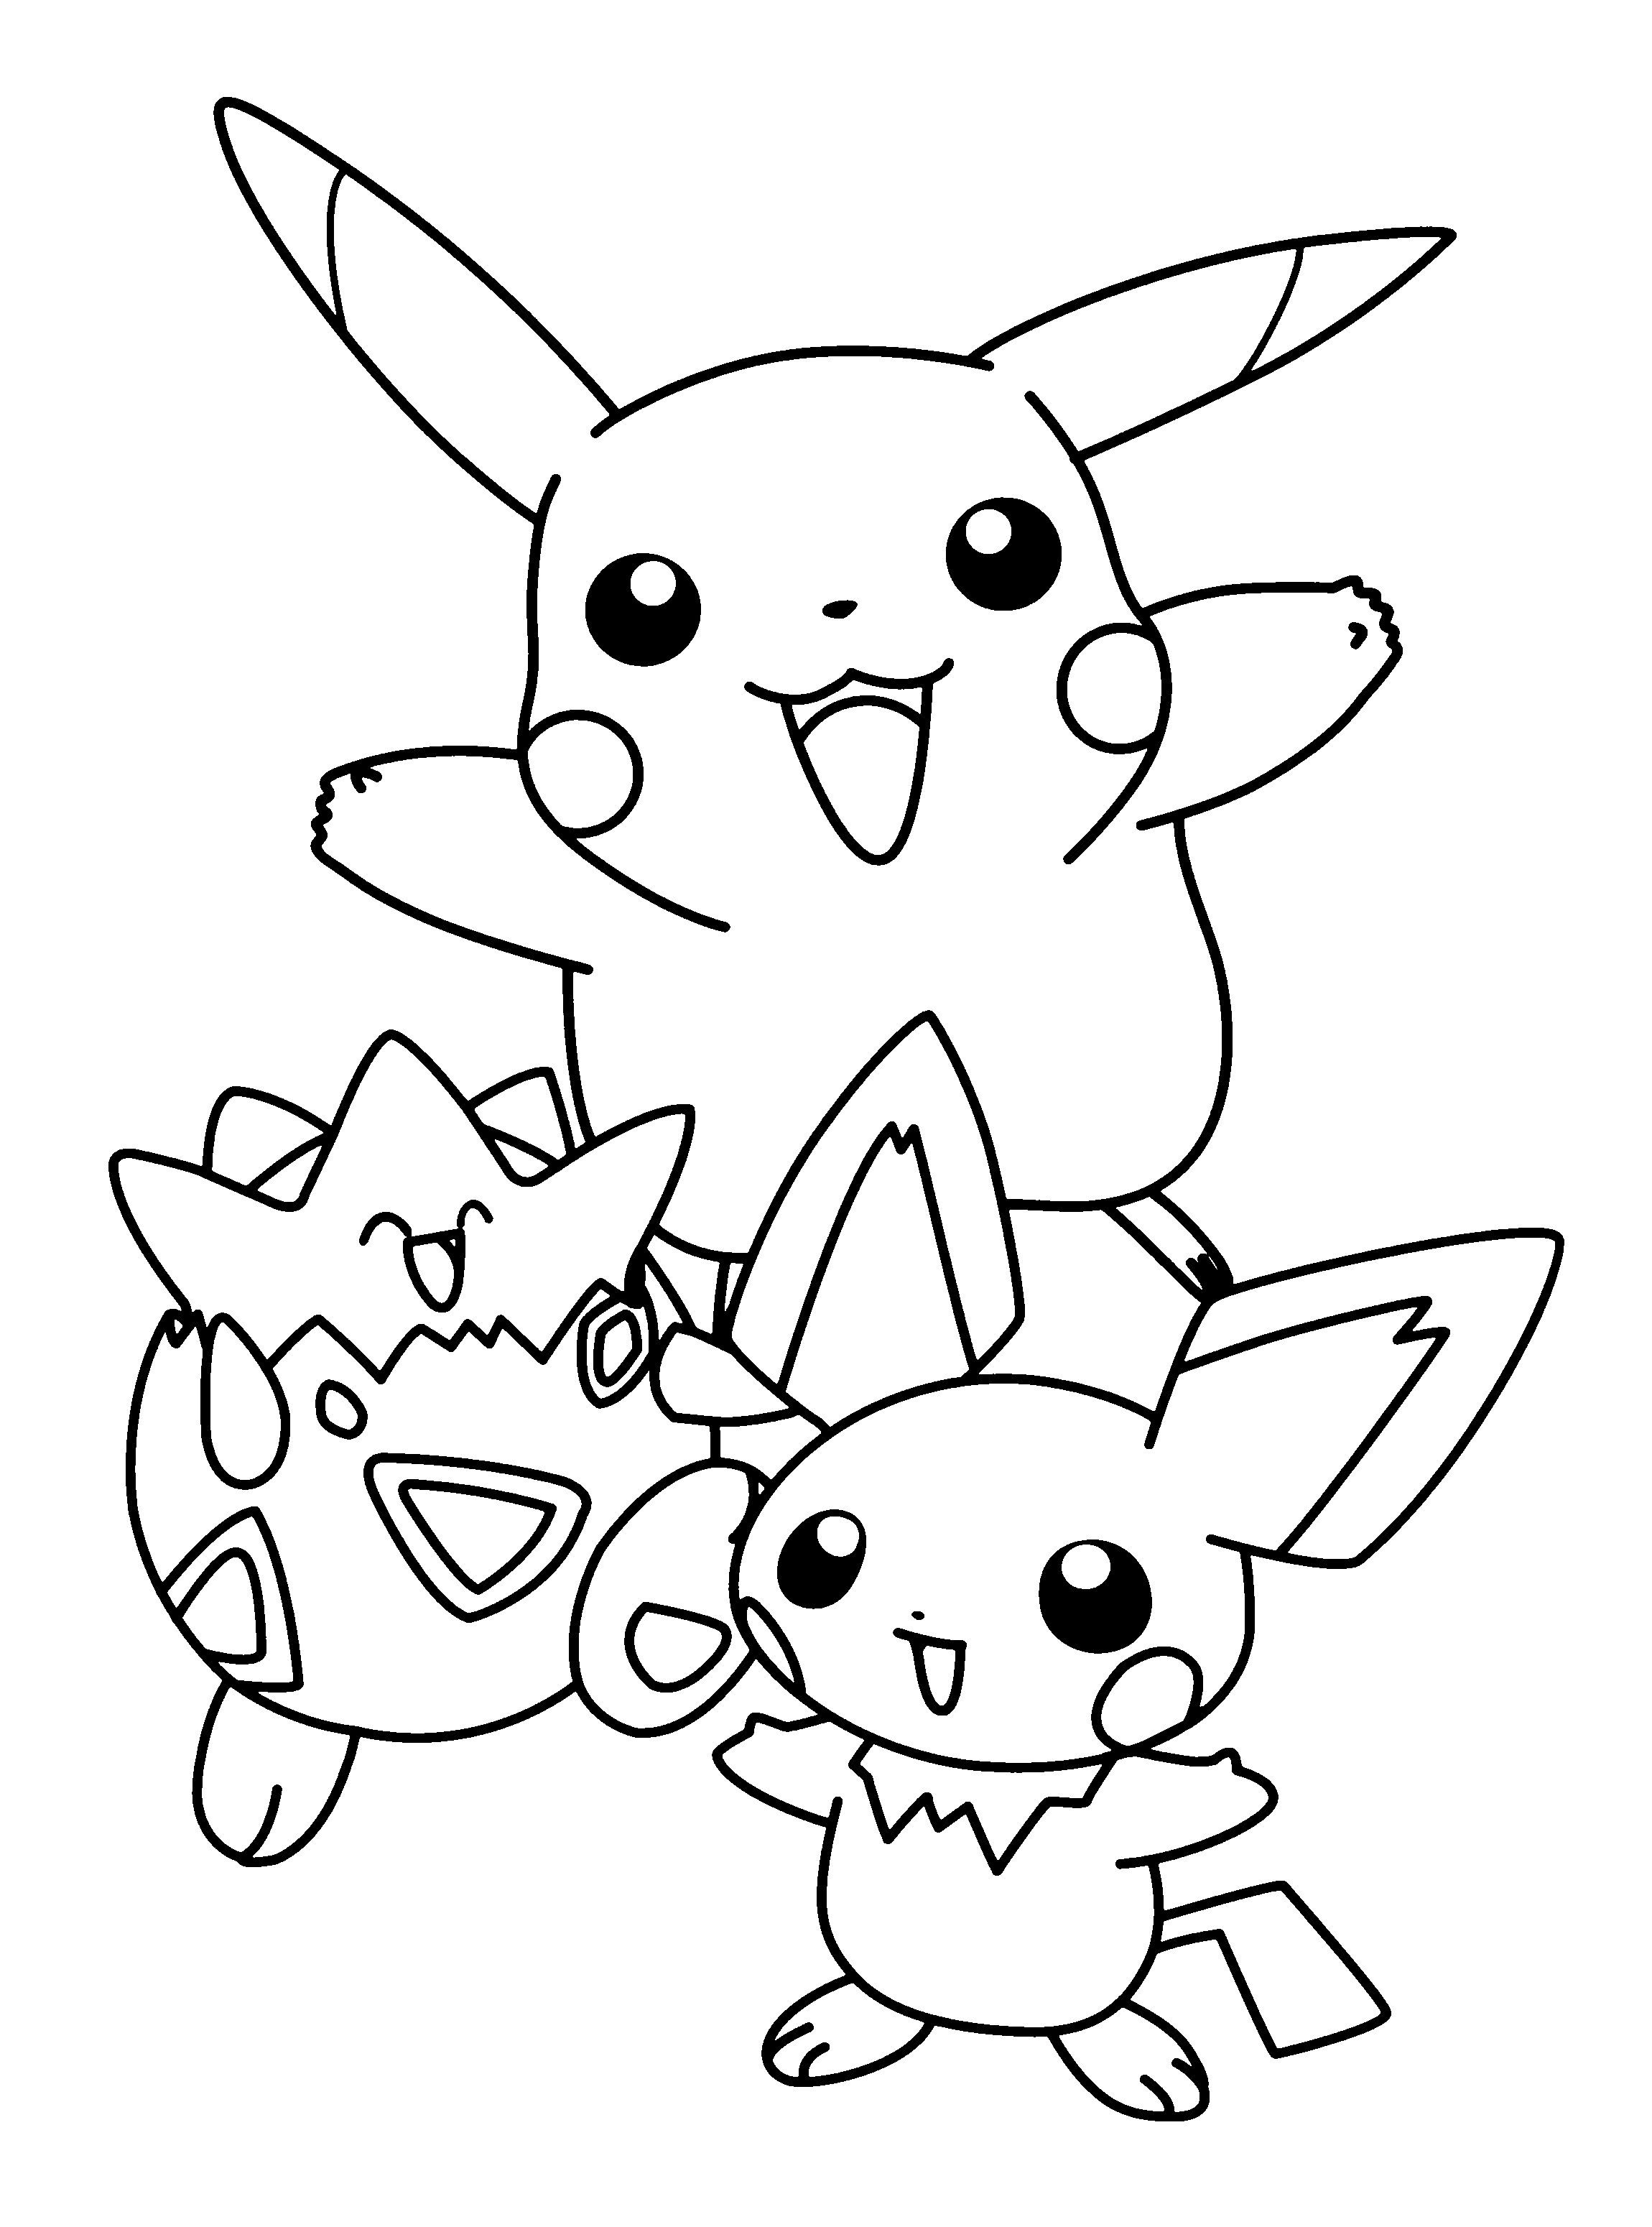 Pokemon Mewtu Ausmalbilder : Pokemon Coloring Pages Free Download Http Procoloring Com Pokemon